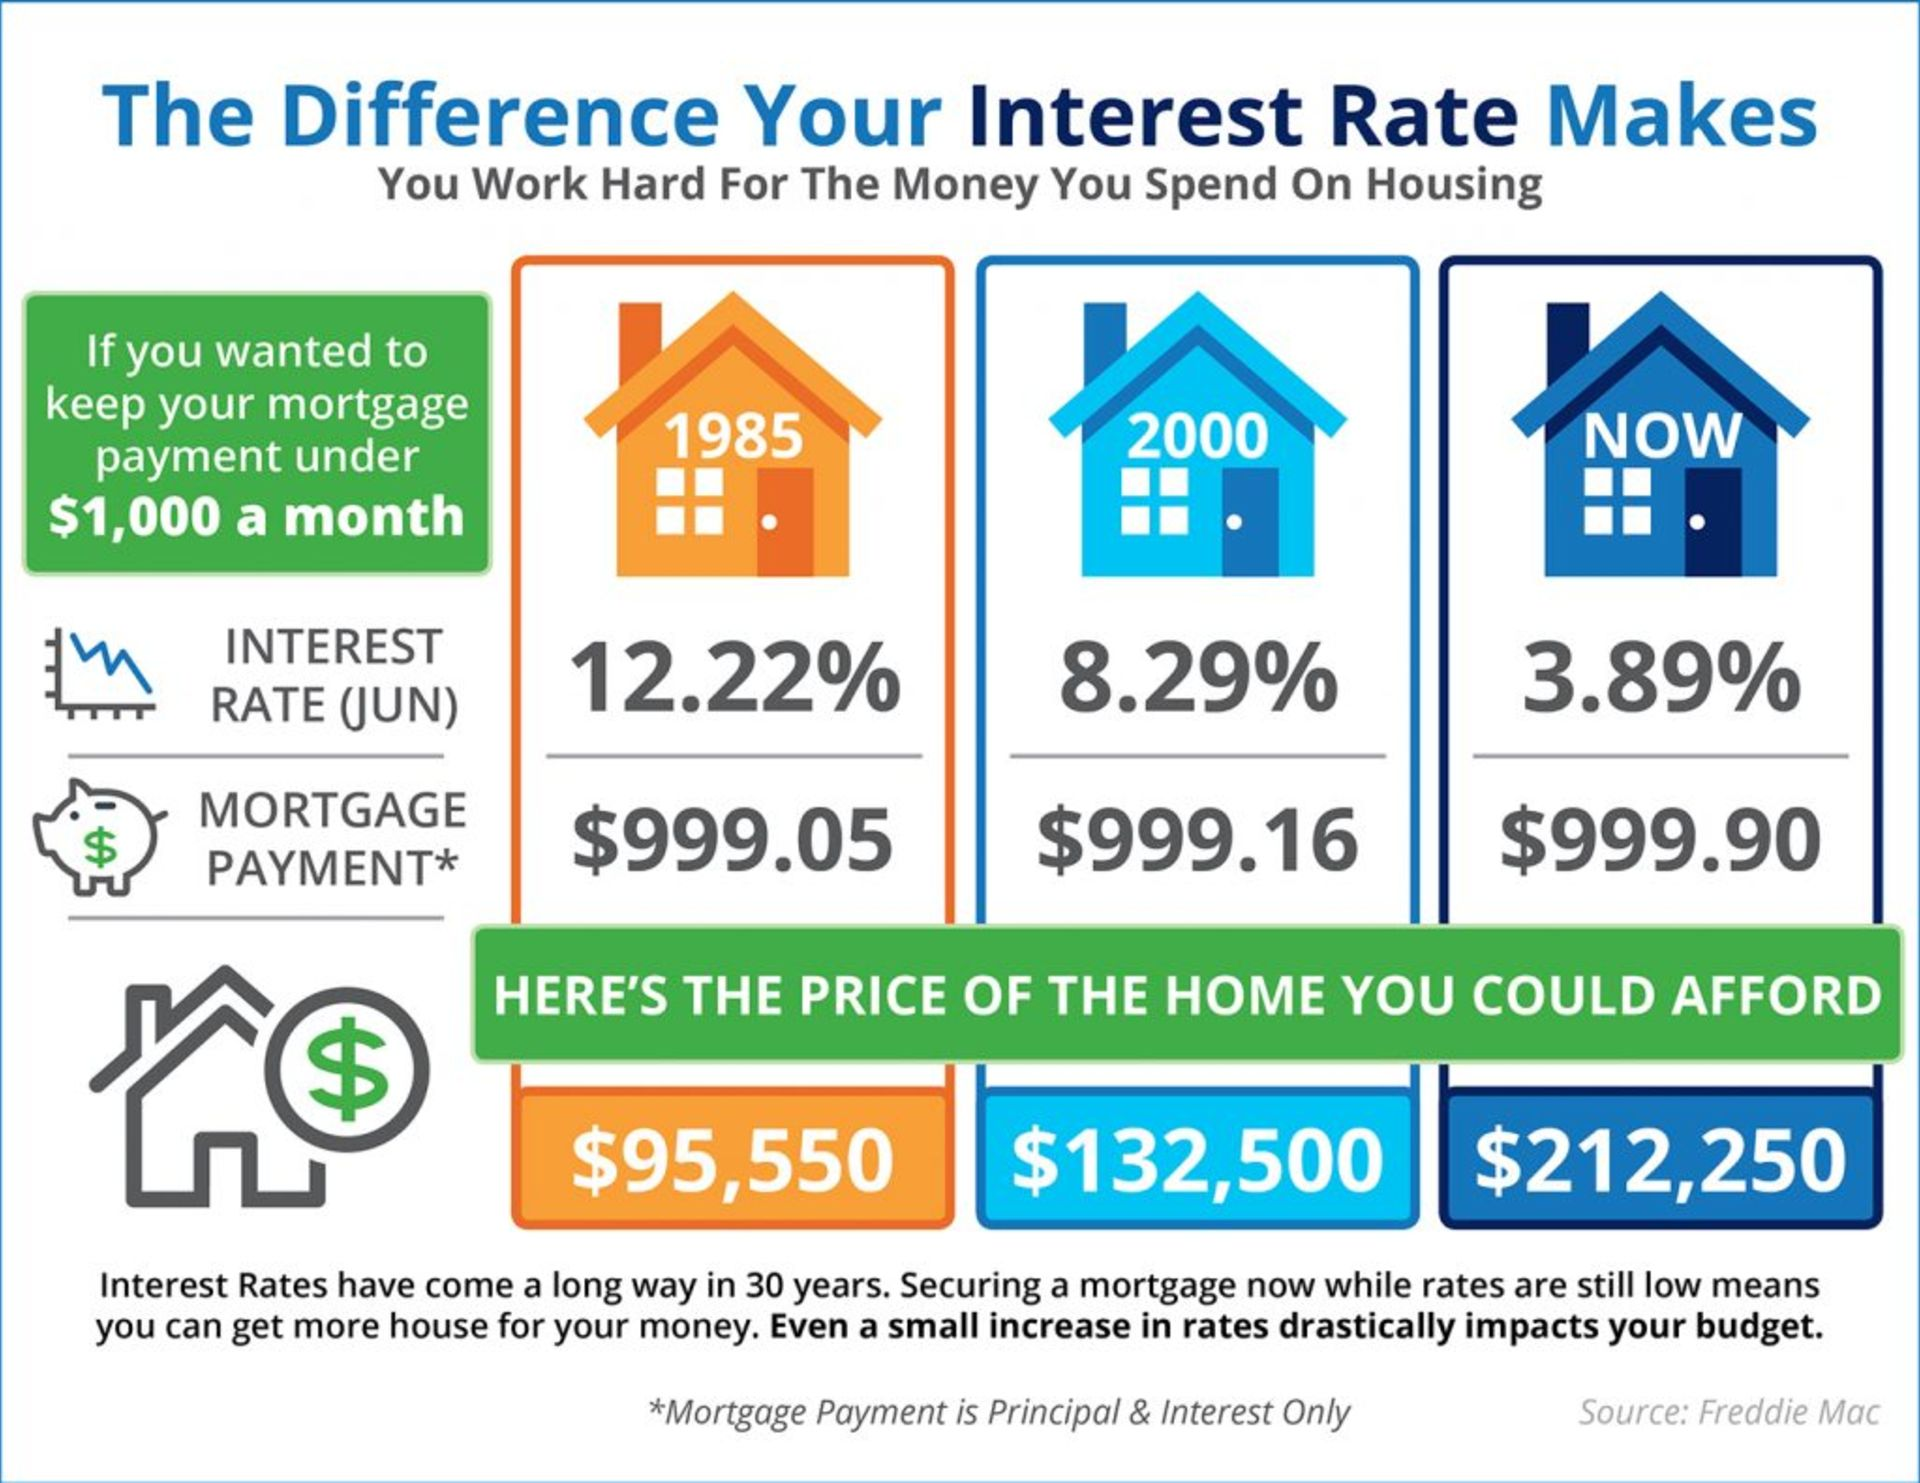 The Impact Your Interest Rate Makes [INFOGRAPHIC]